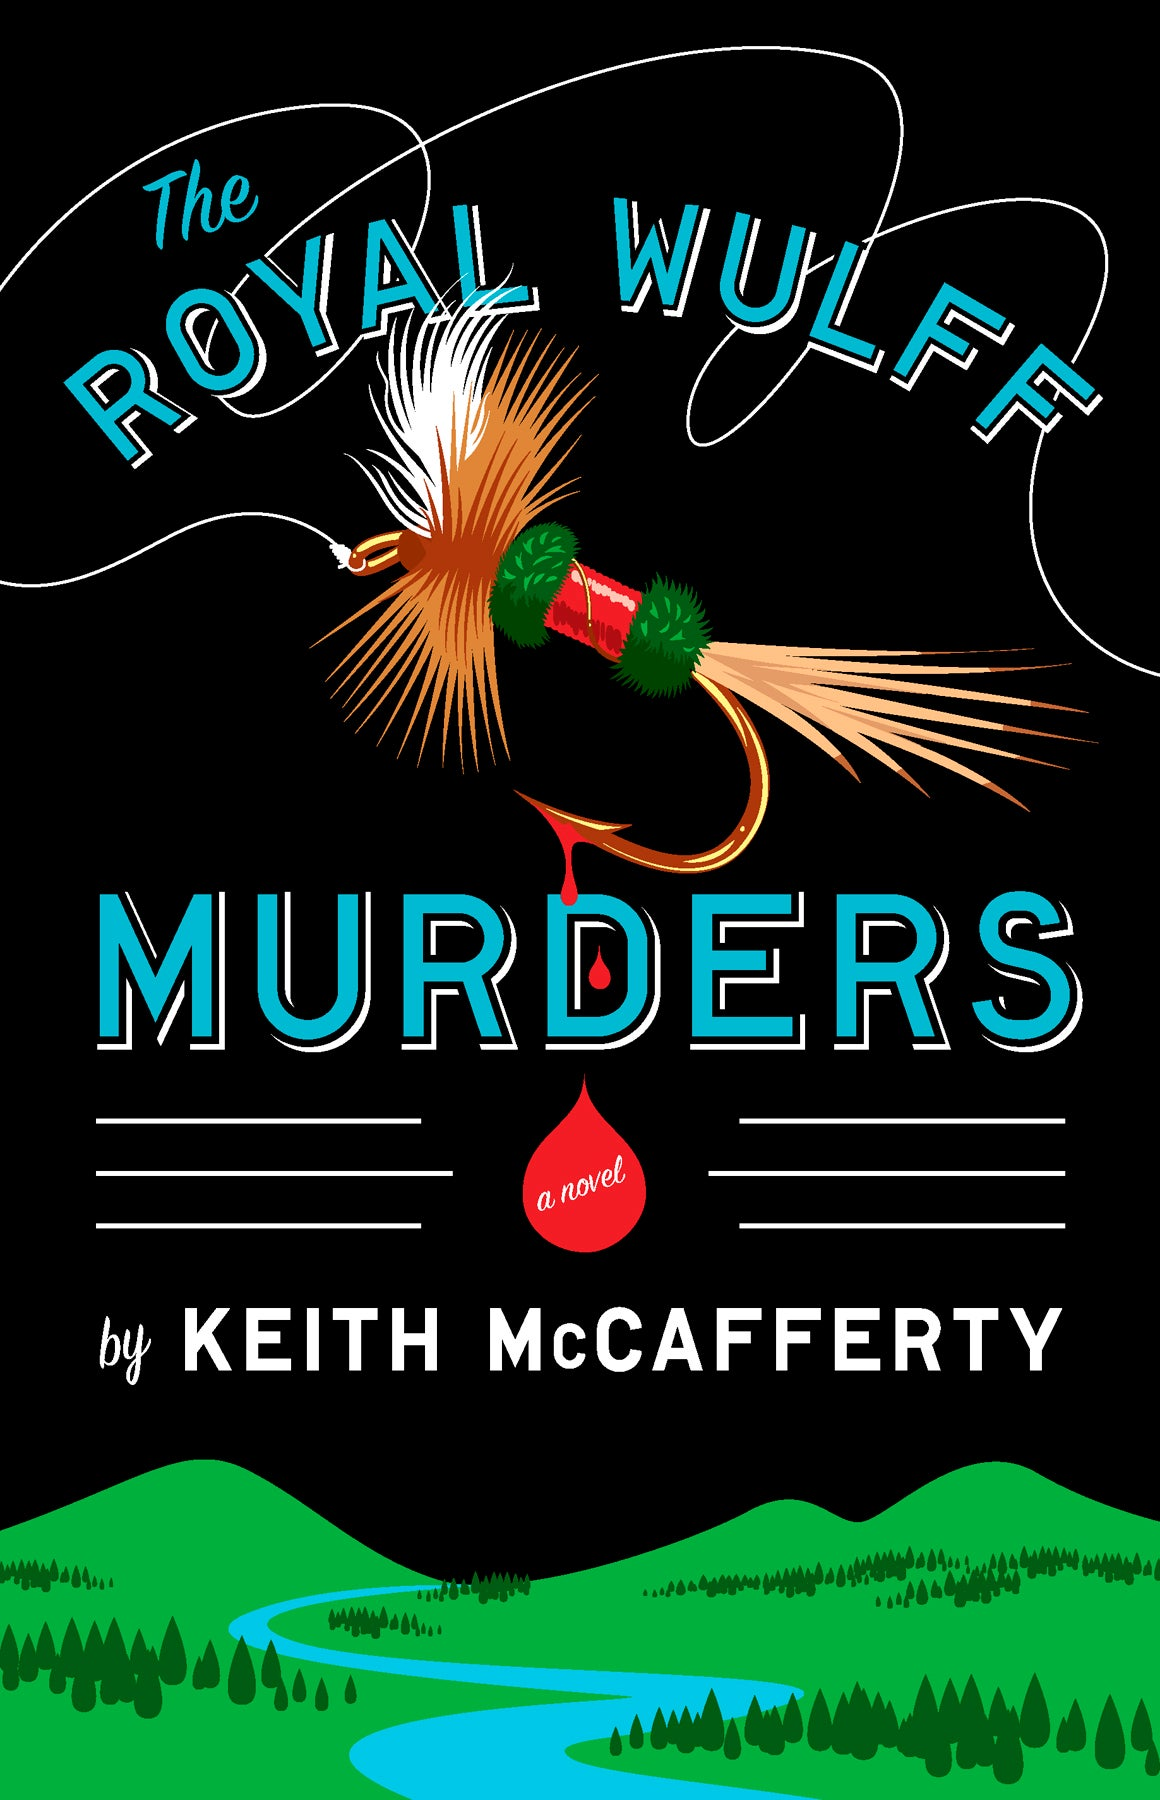 An Excerpt from THE ROYAL WULFF MURDERS by Keith McCafferty